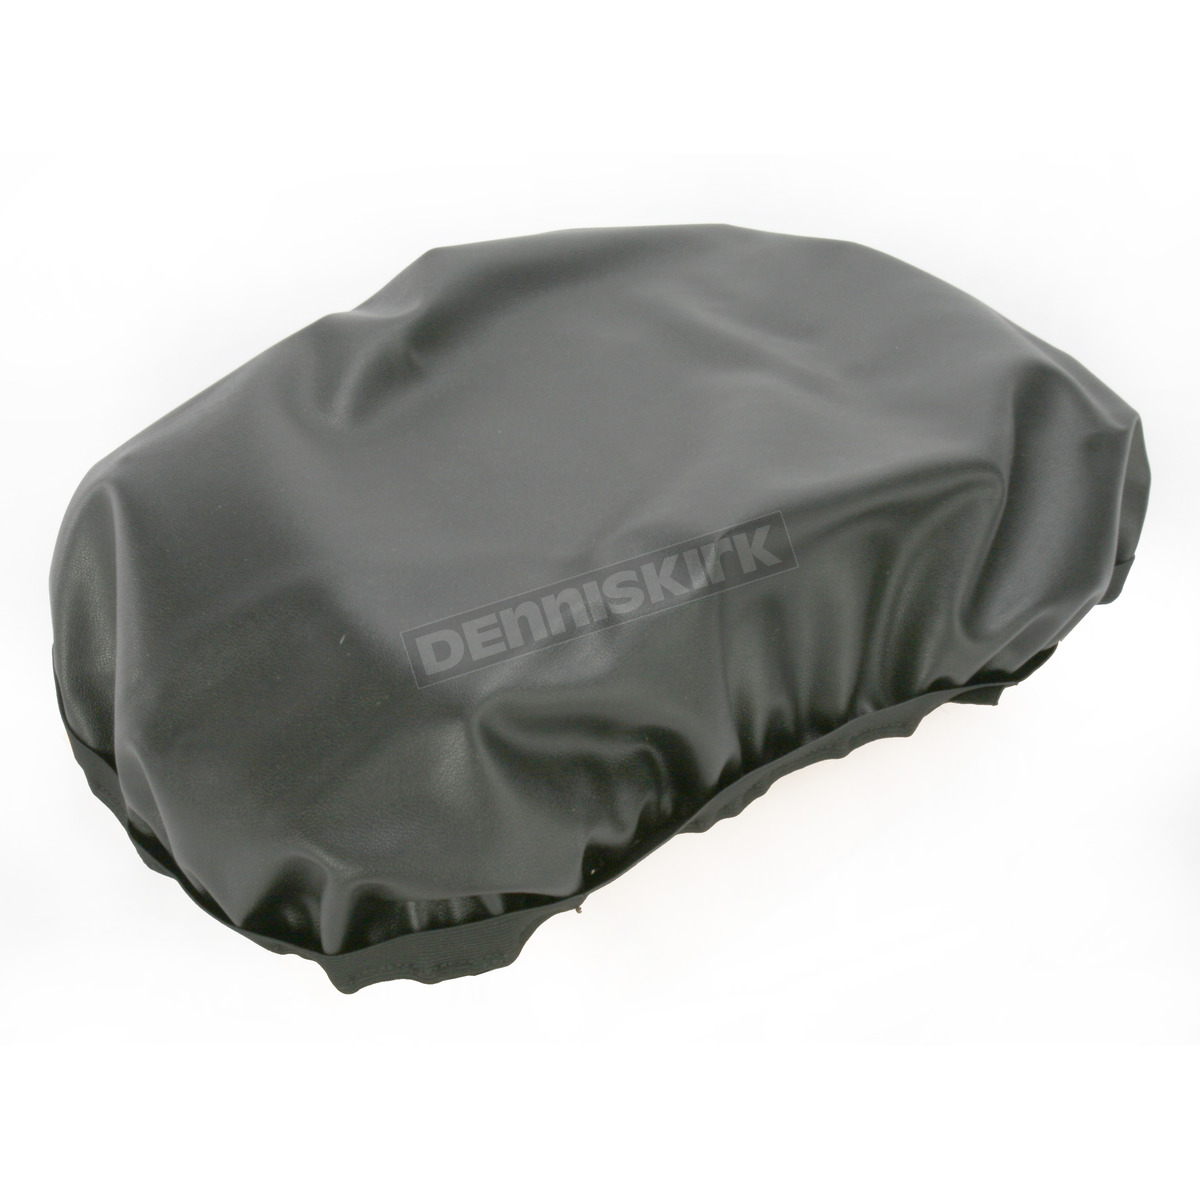 Motorcycle Seat Replacement : Saddlemen replacement seat cover y cruiser motorcycle